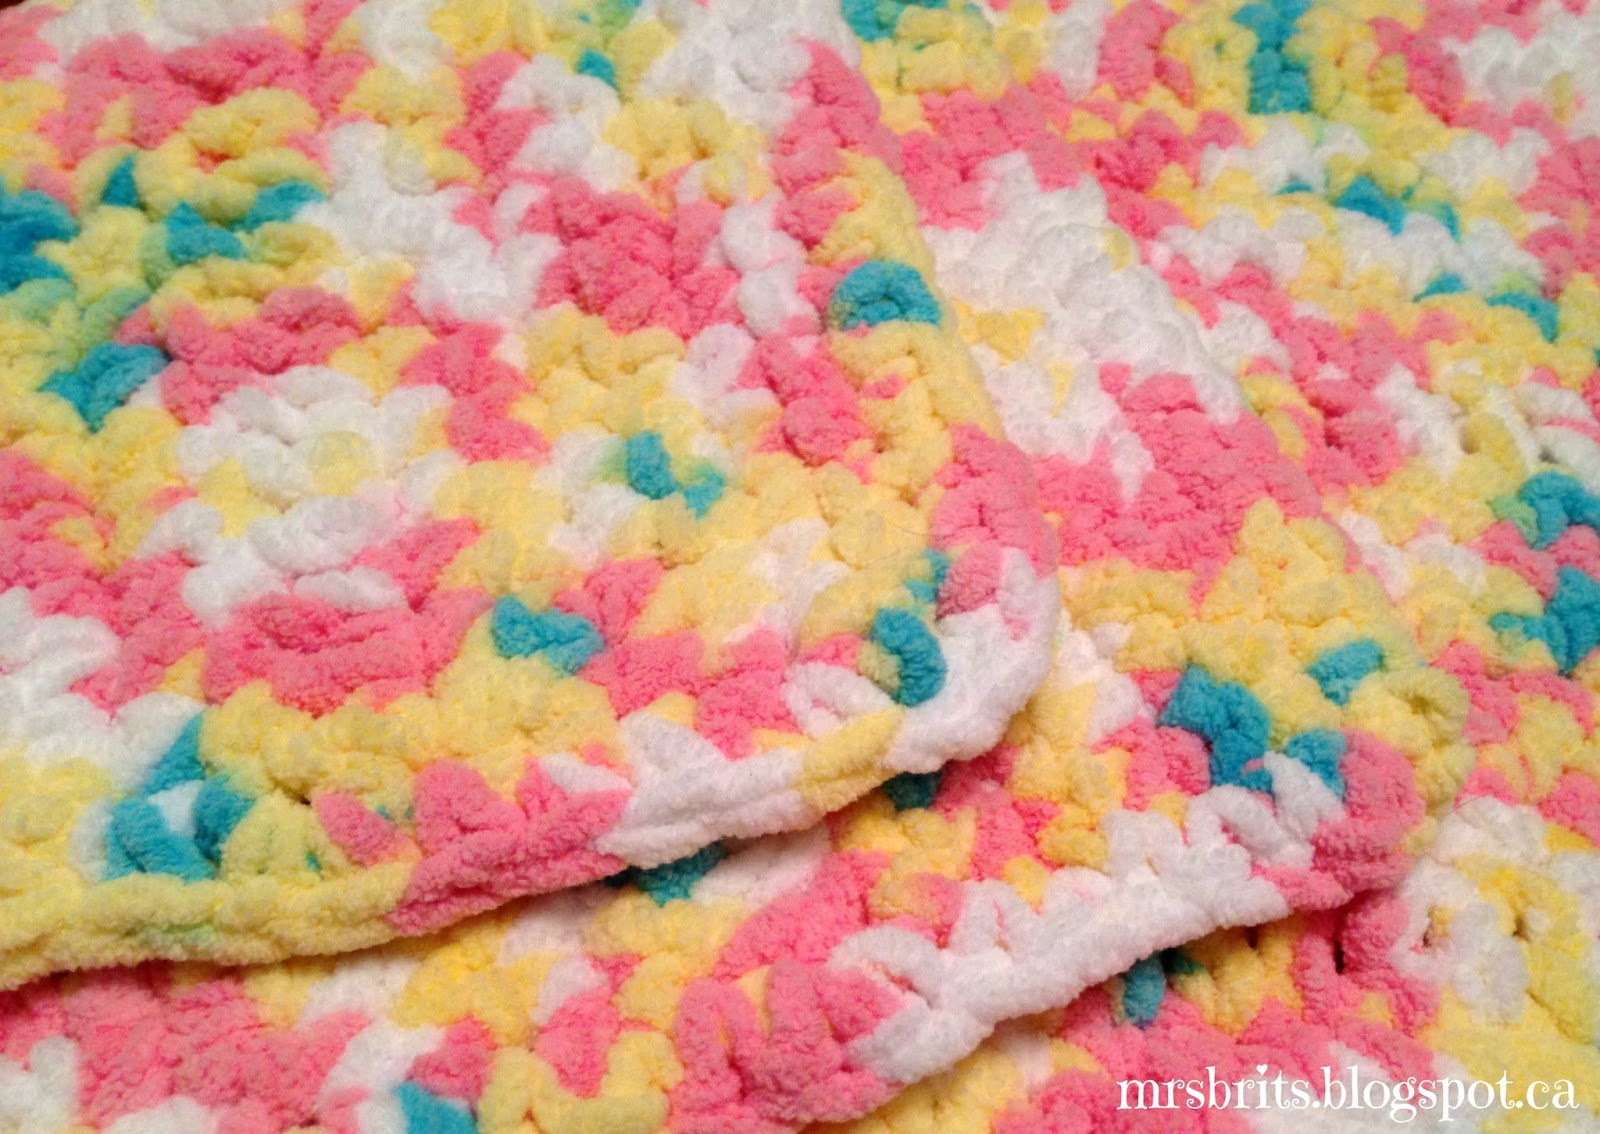 Crochet Patterns Super Bulky Yarn : Labels: charmacrafts , crochet , crochet afghan , crochet pattern